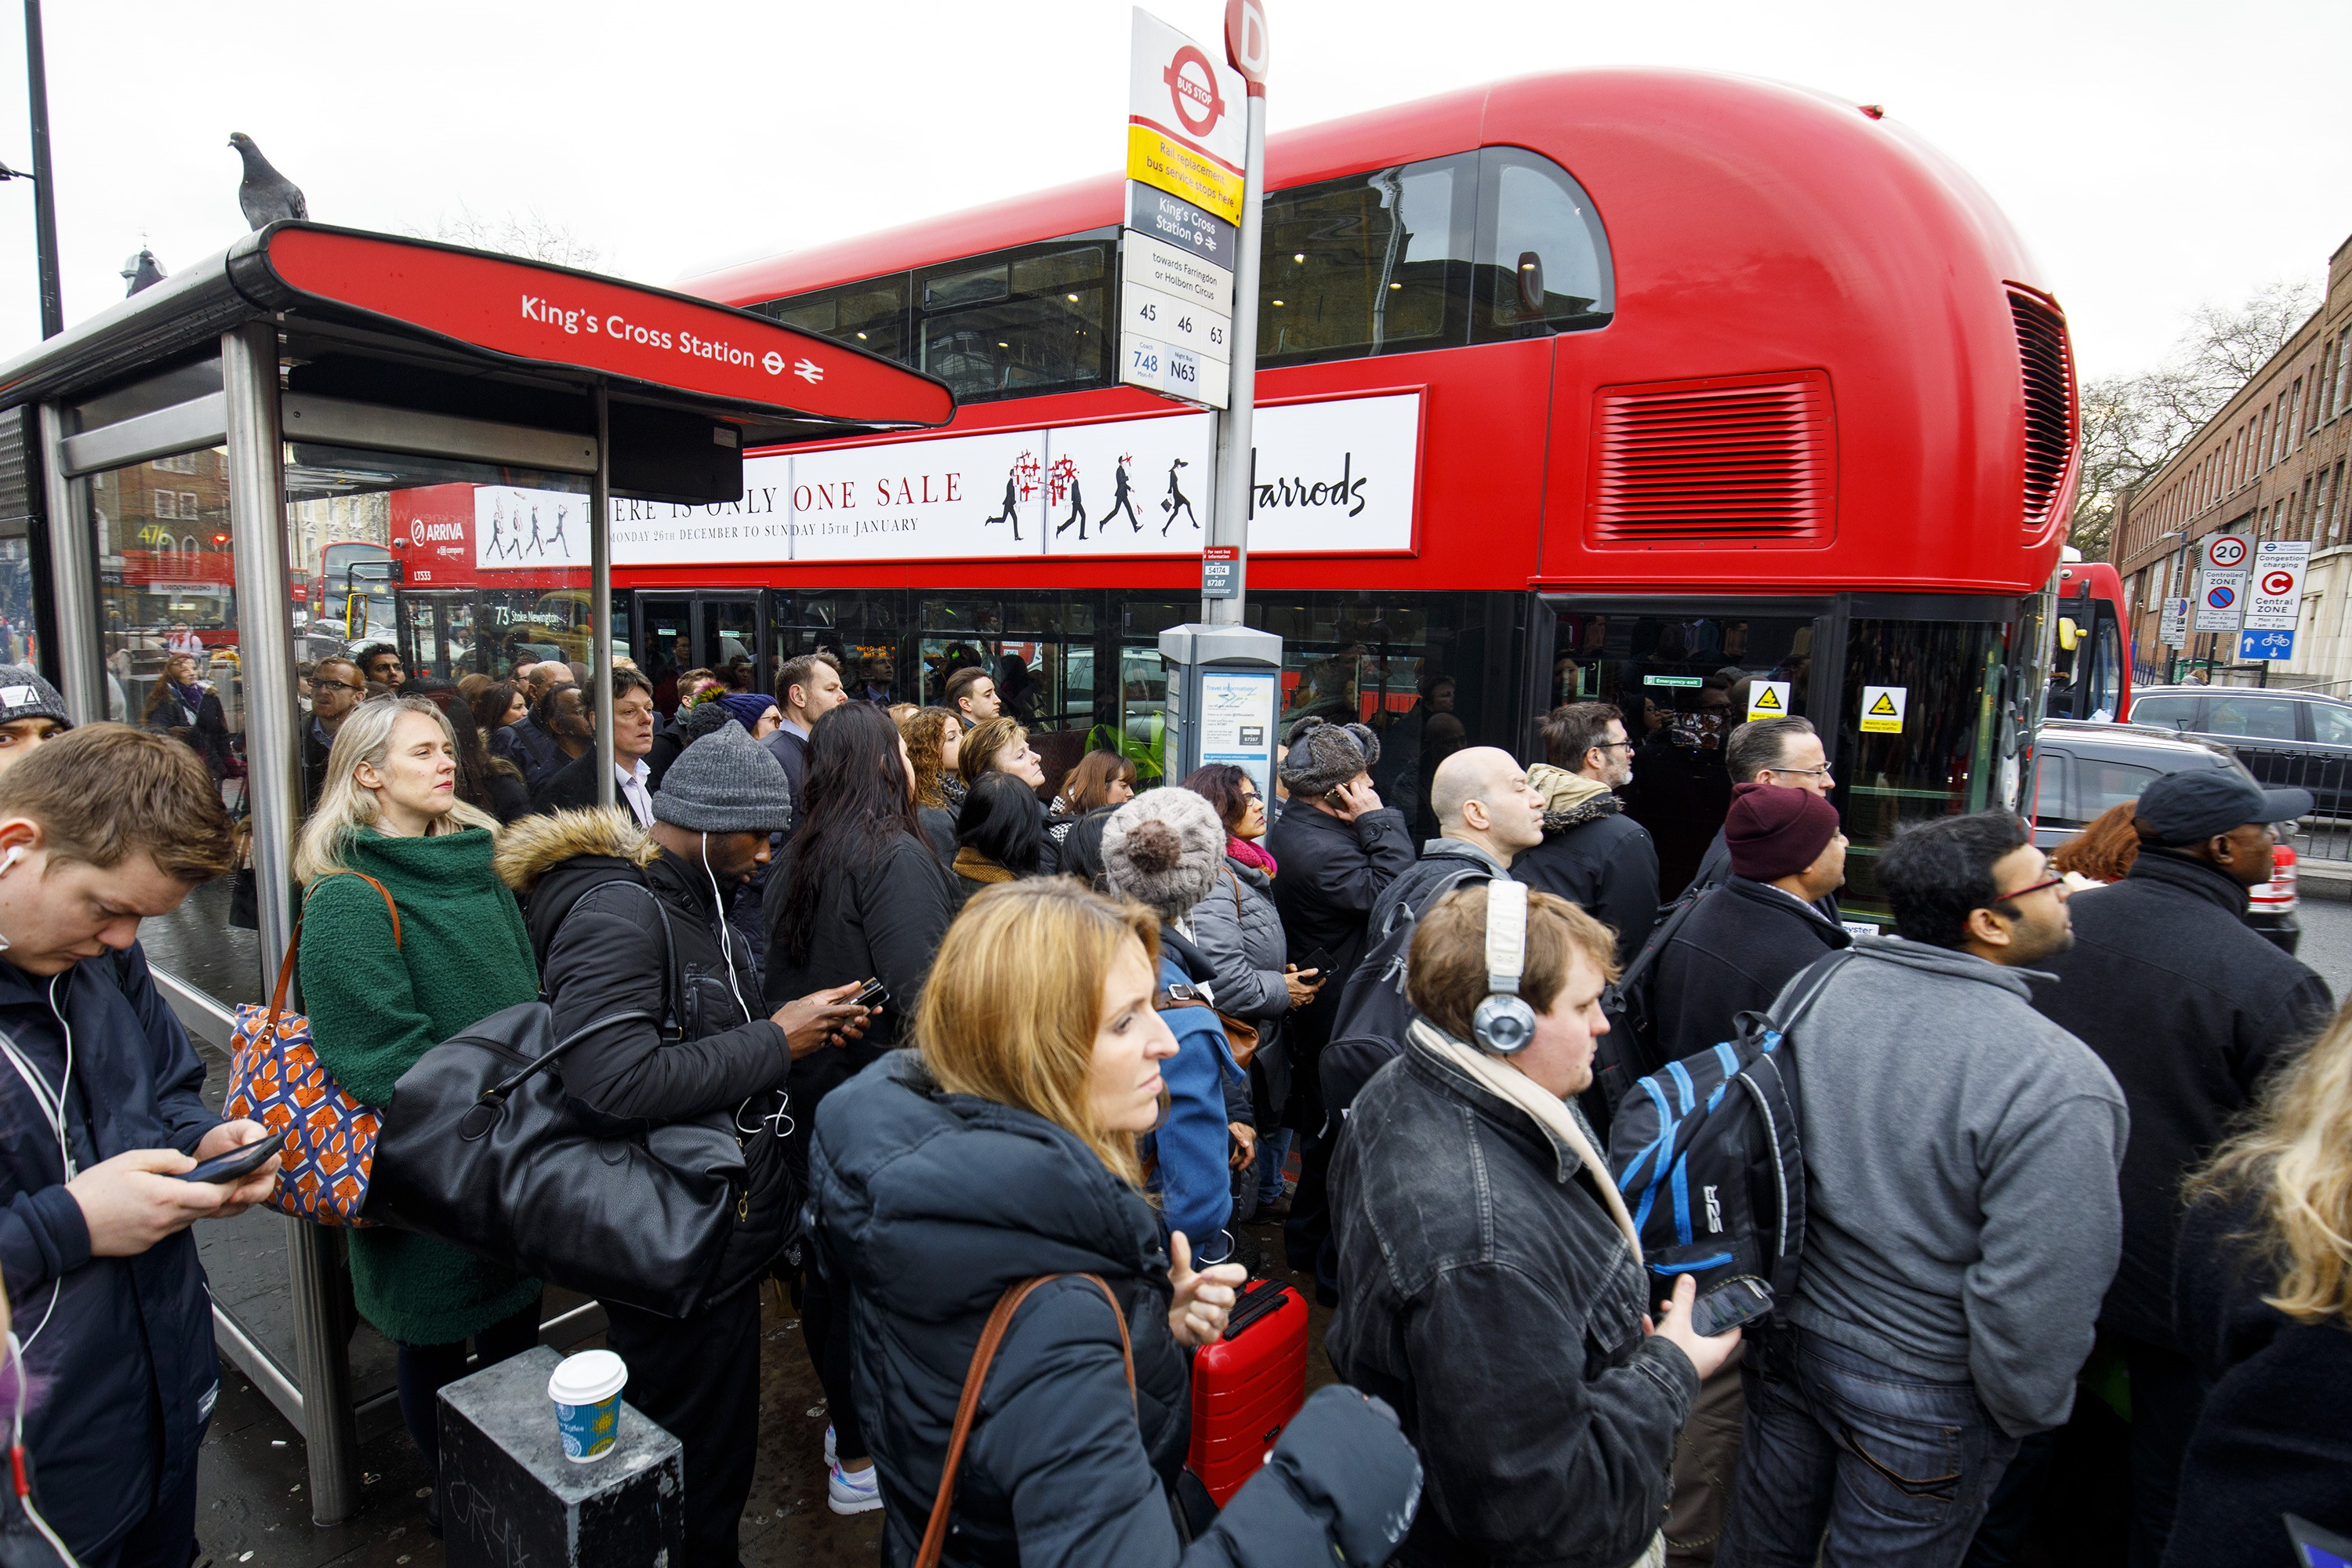 Commuters queue for buses outside King's Cross station as London Underground services are severely disrupted due to members of RMT and TSSA unions start a 24-hour strike action in a dispute over jobs cuts and closed ticket offices on January 9, 2017.